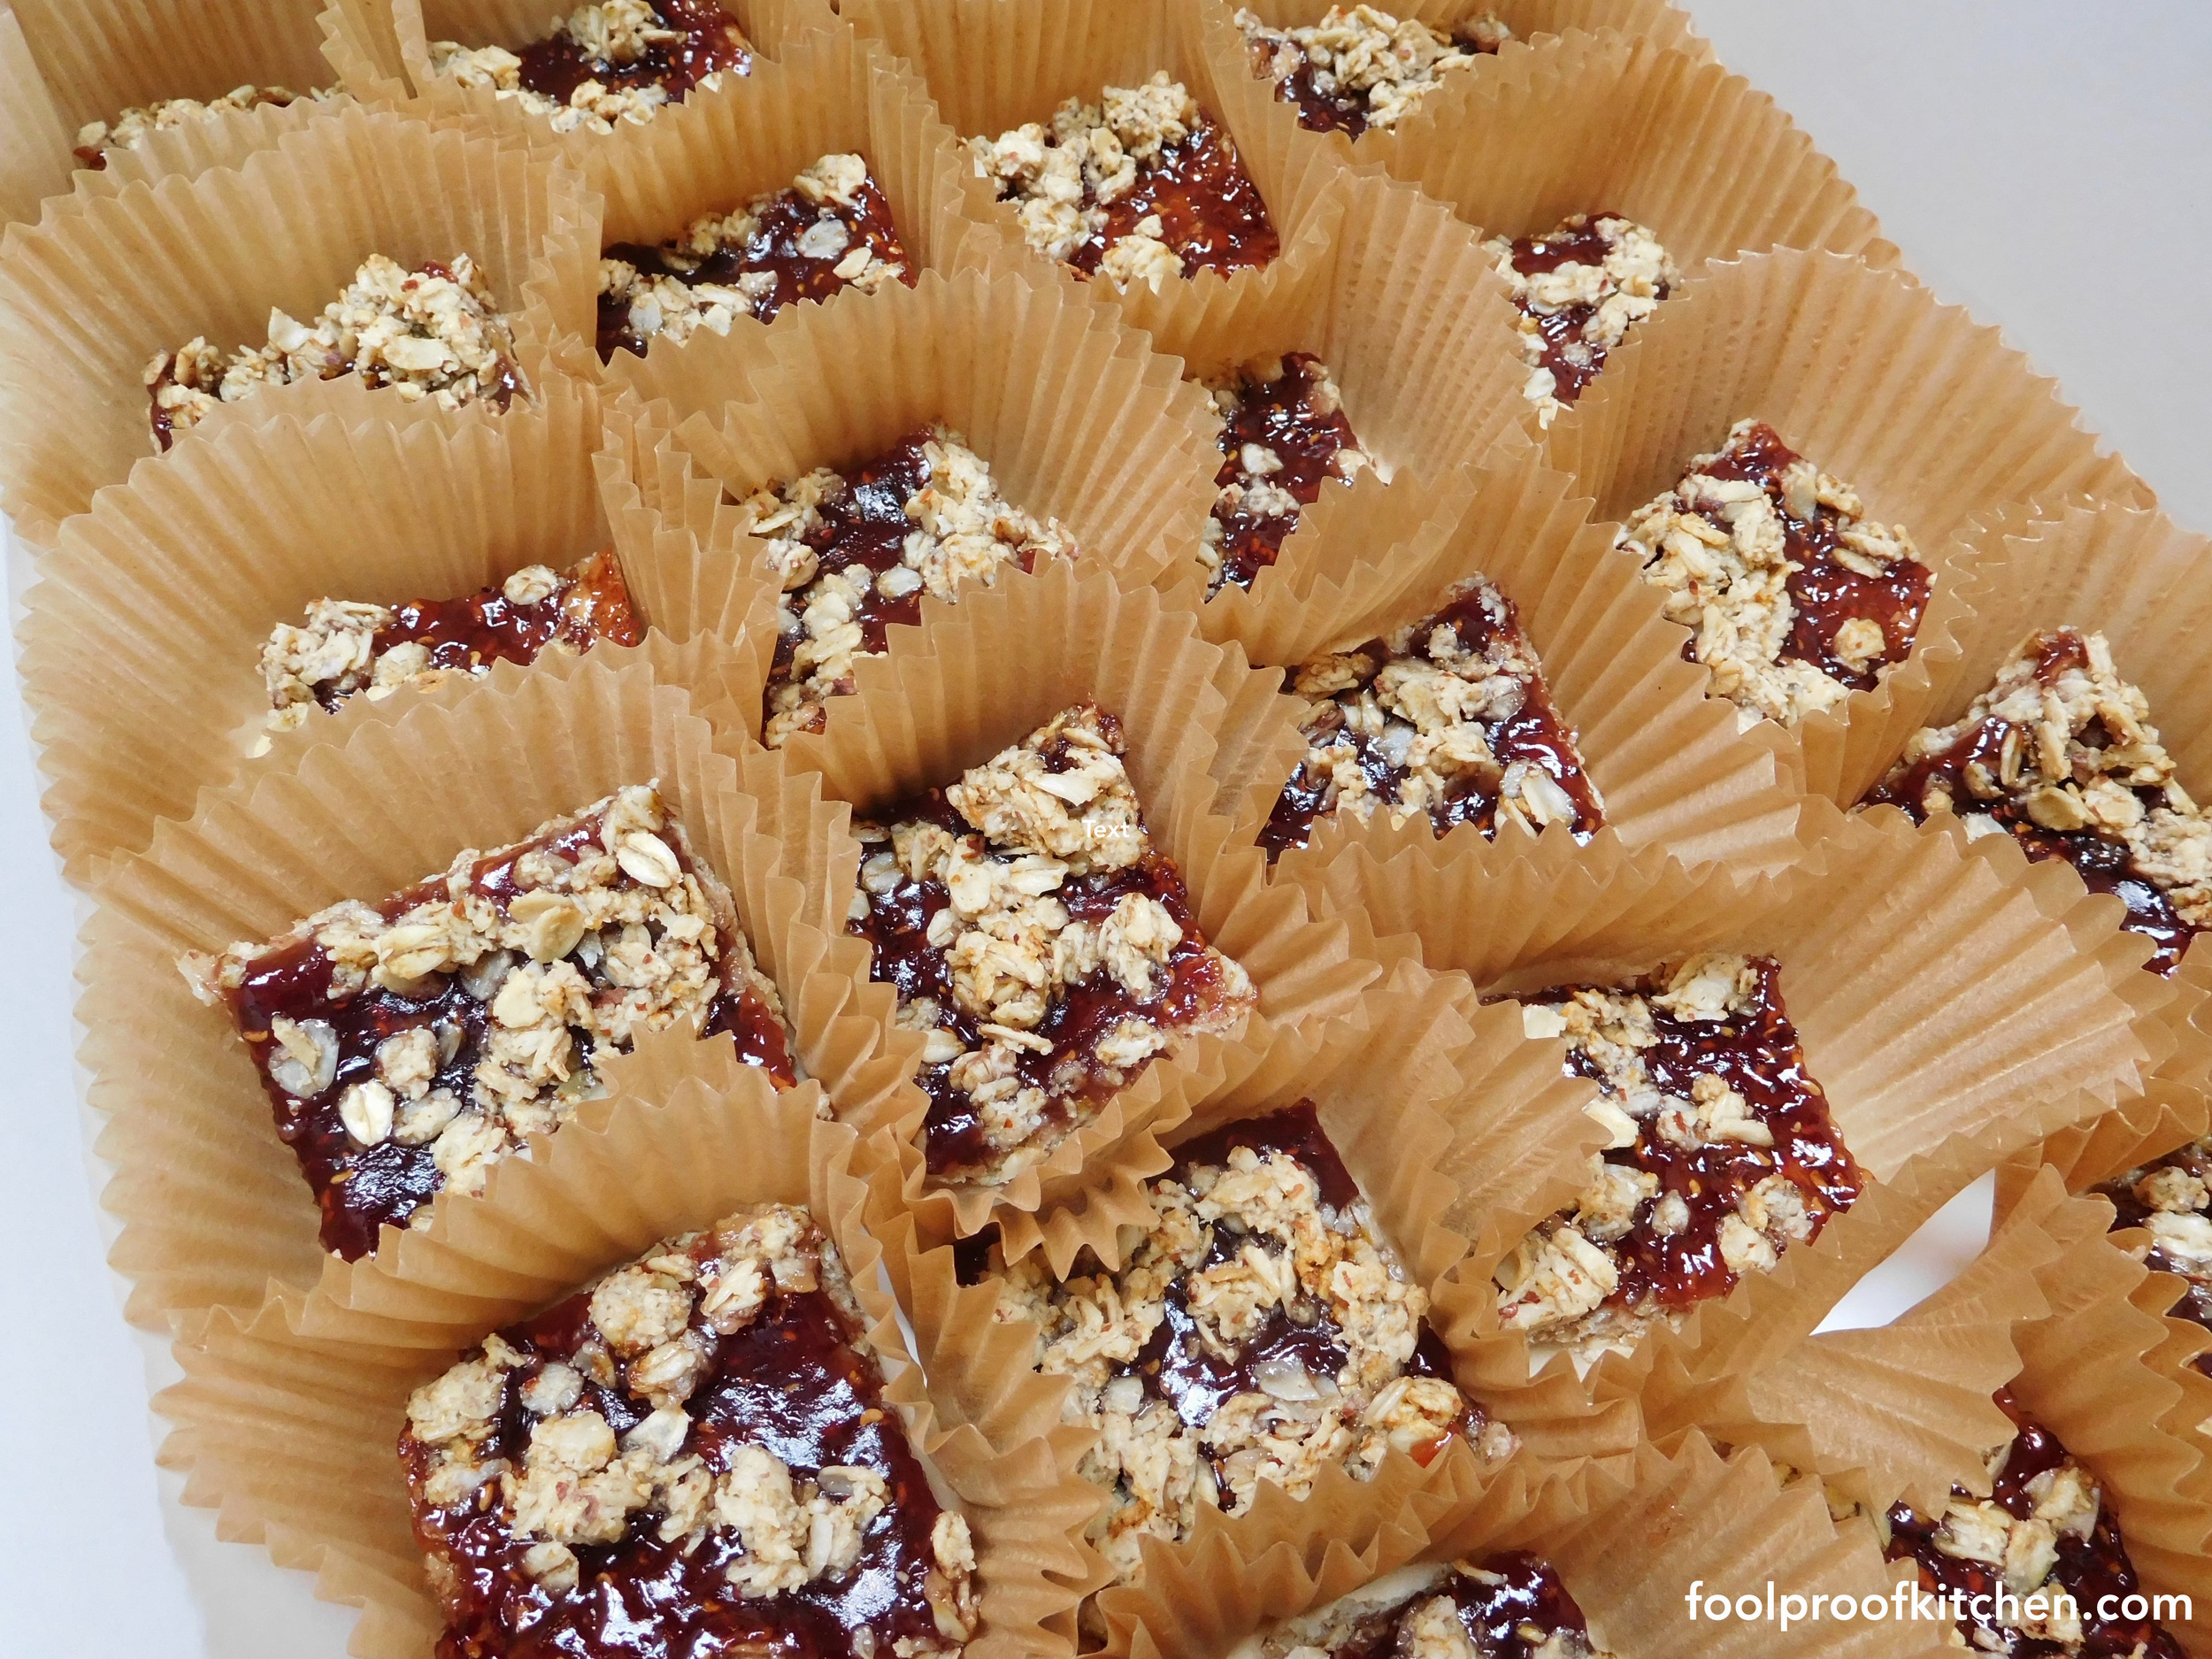 r oat squares in cups.jpg